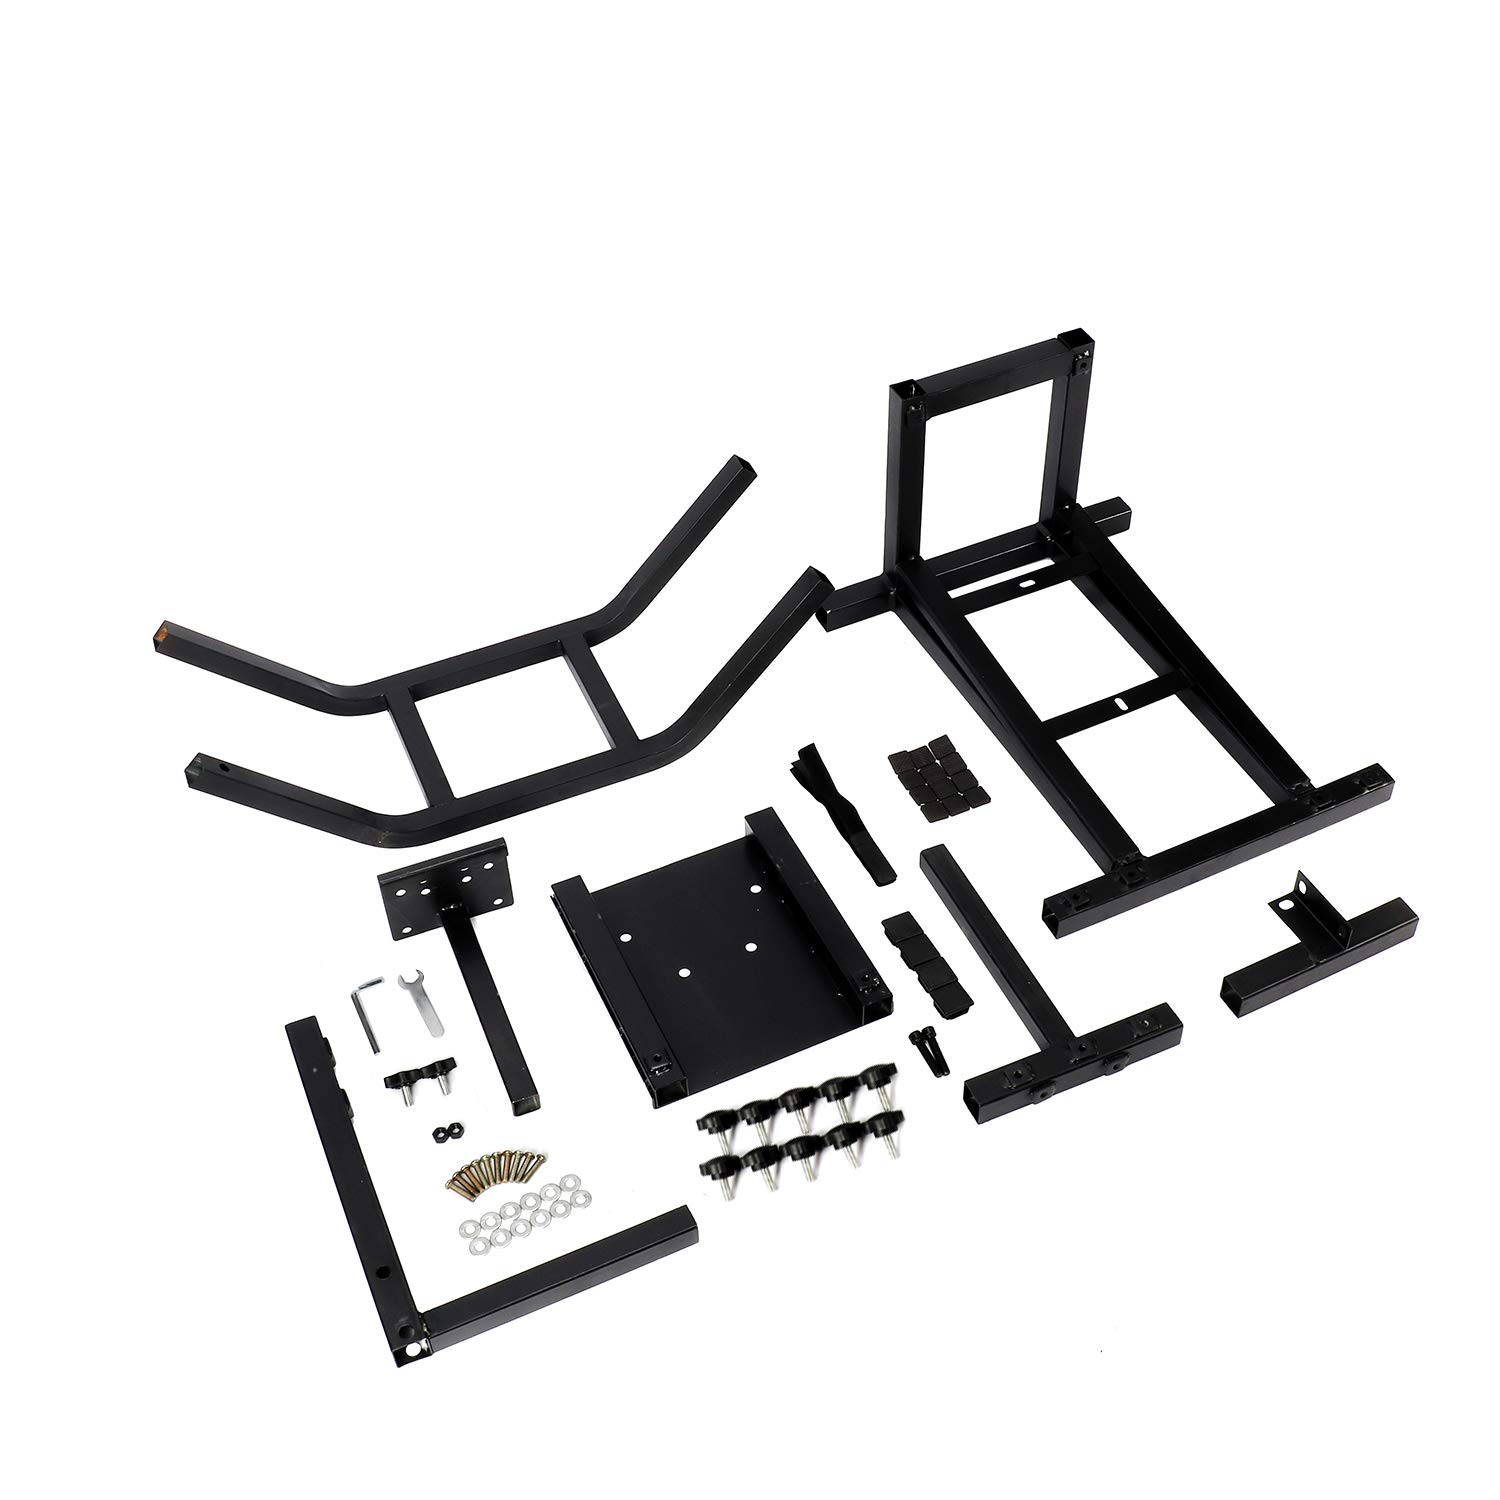 G27 and G25 Nisorpa Racing Simulator Steering Wheel Stand Suitable for Logitech G920